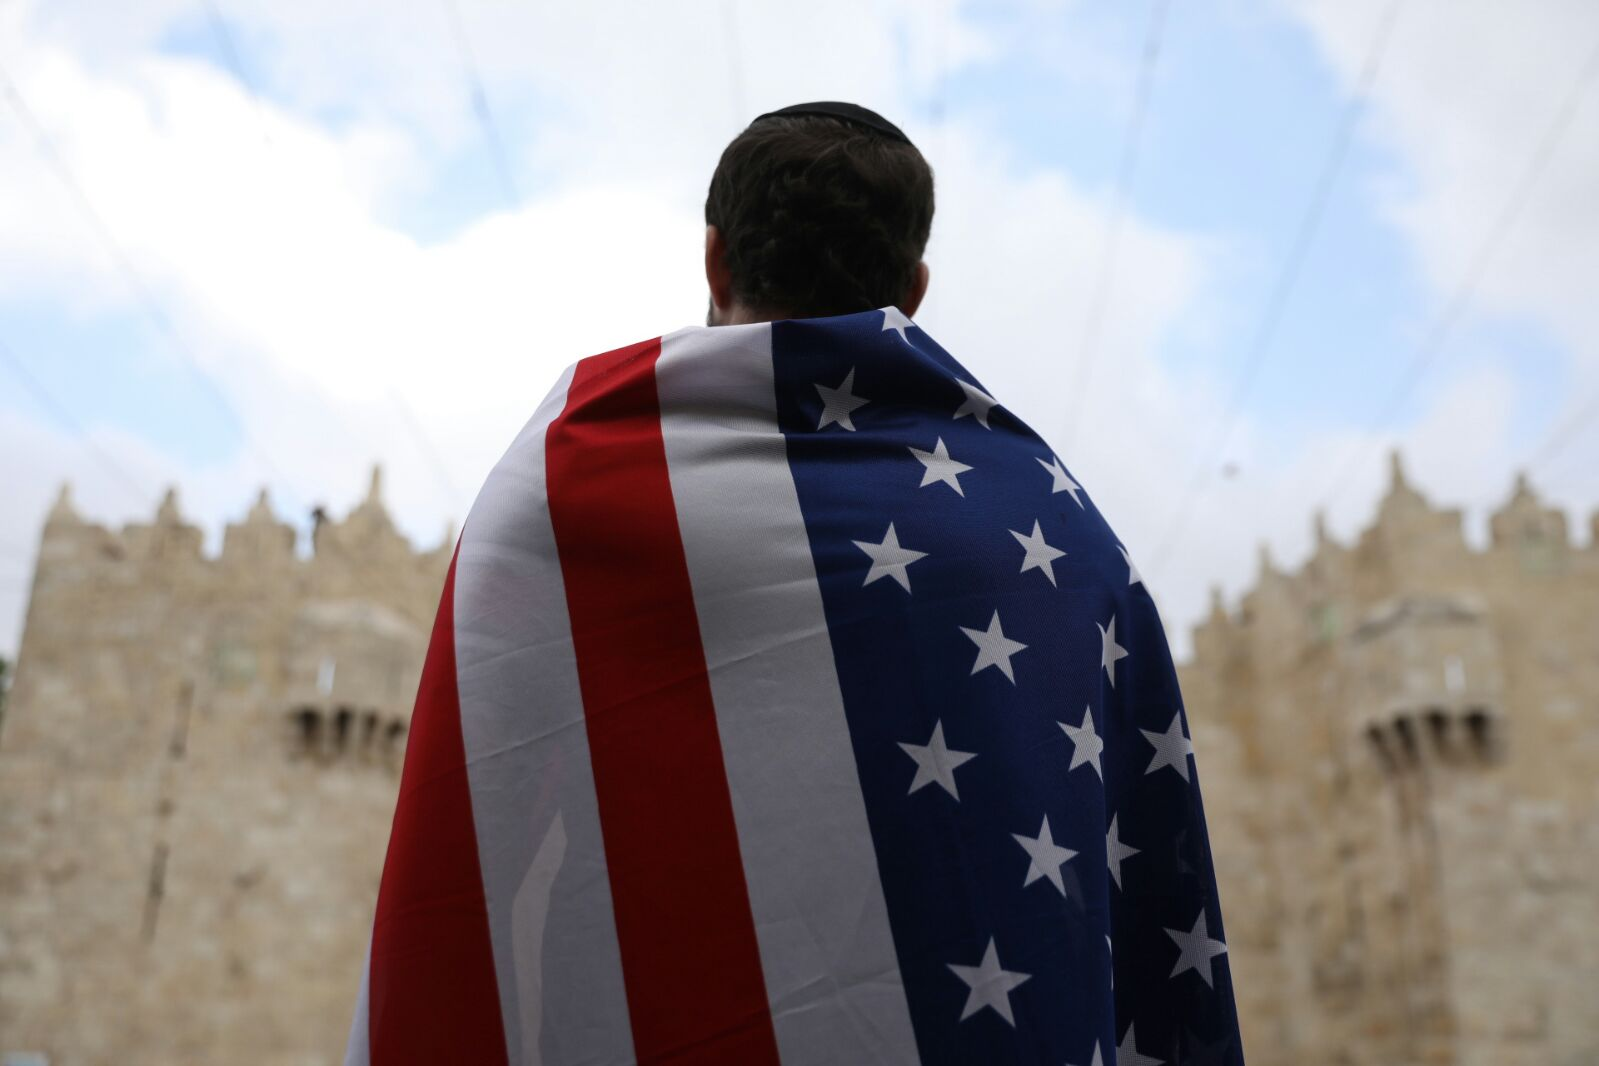 A man draped in an American flag stands in front of Damascus Gate during the annual 'March of the Flags,' as part of Jerusalem Day, May 13, 2018. (Oren Ziv/Activestills.org)